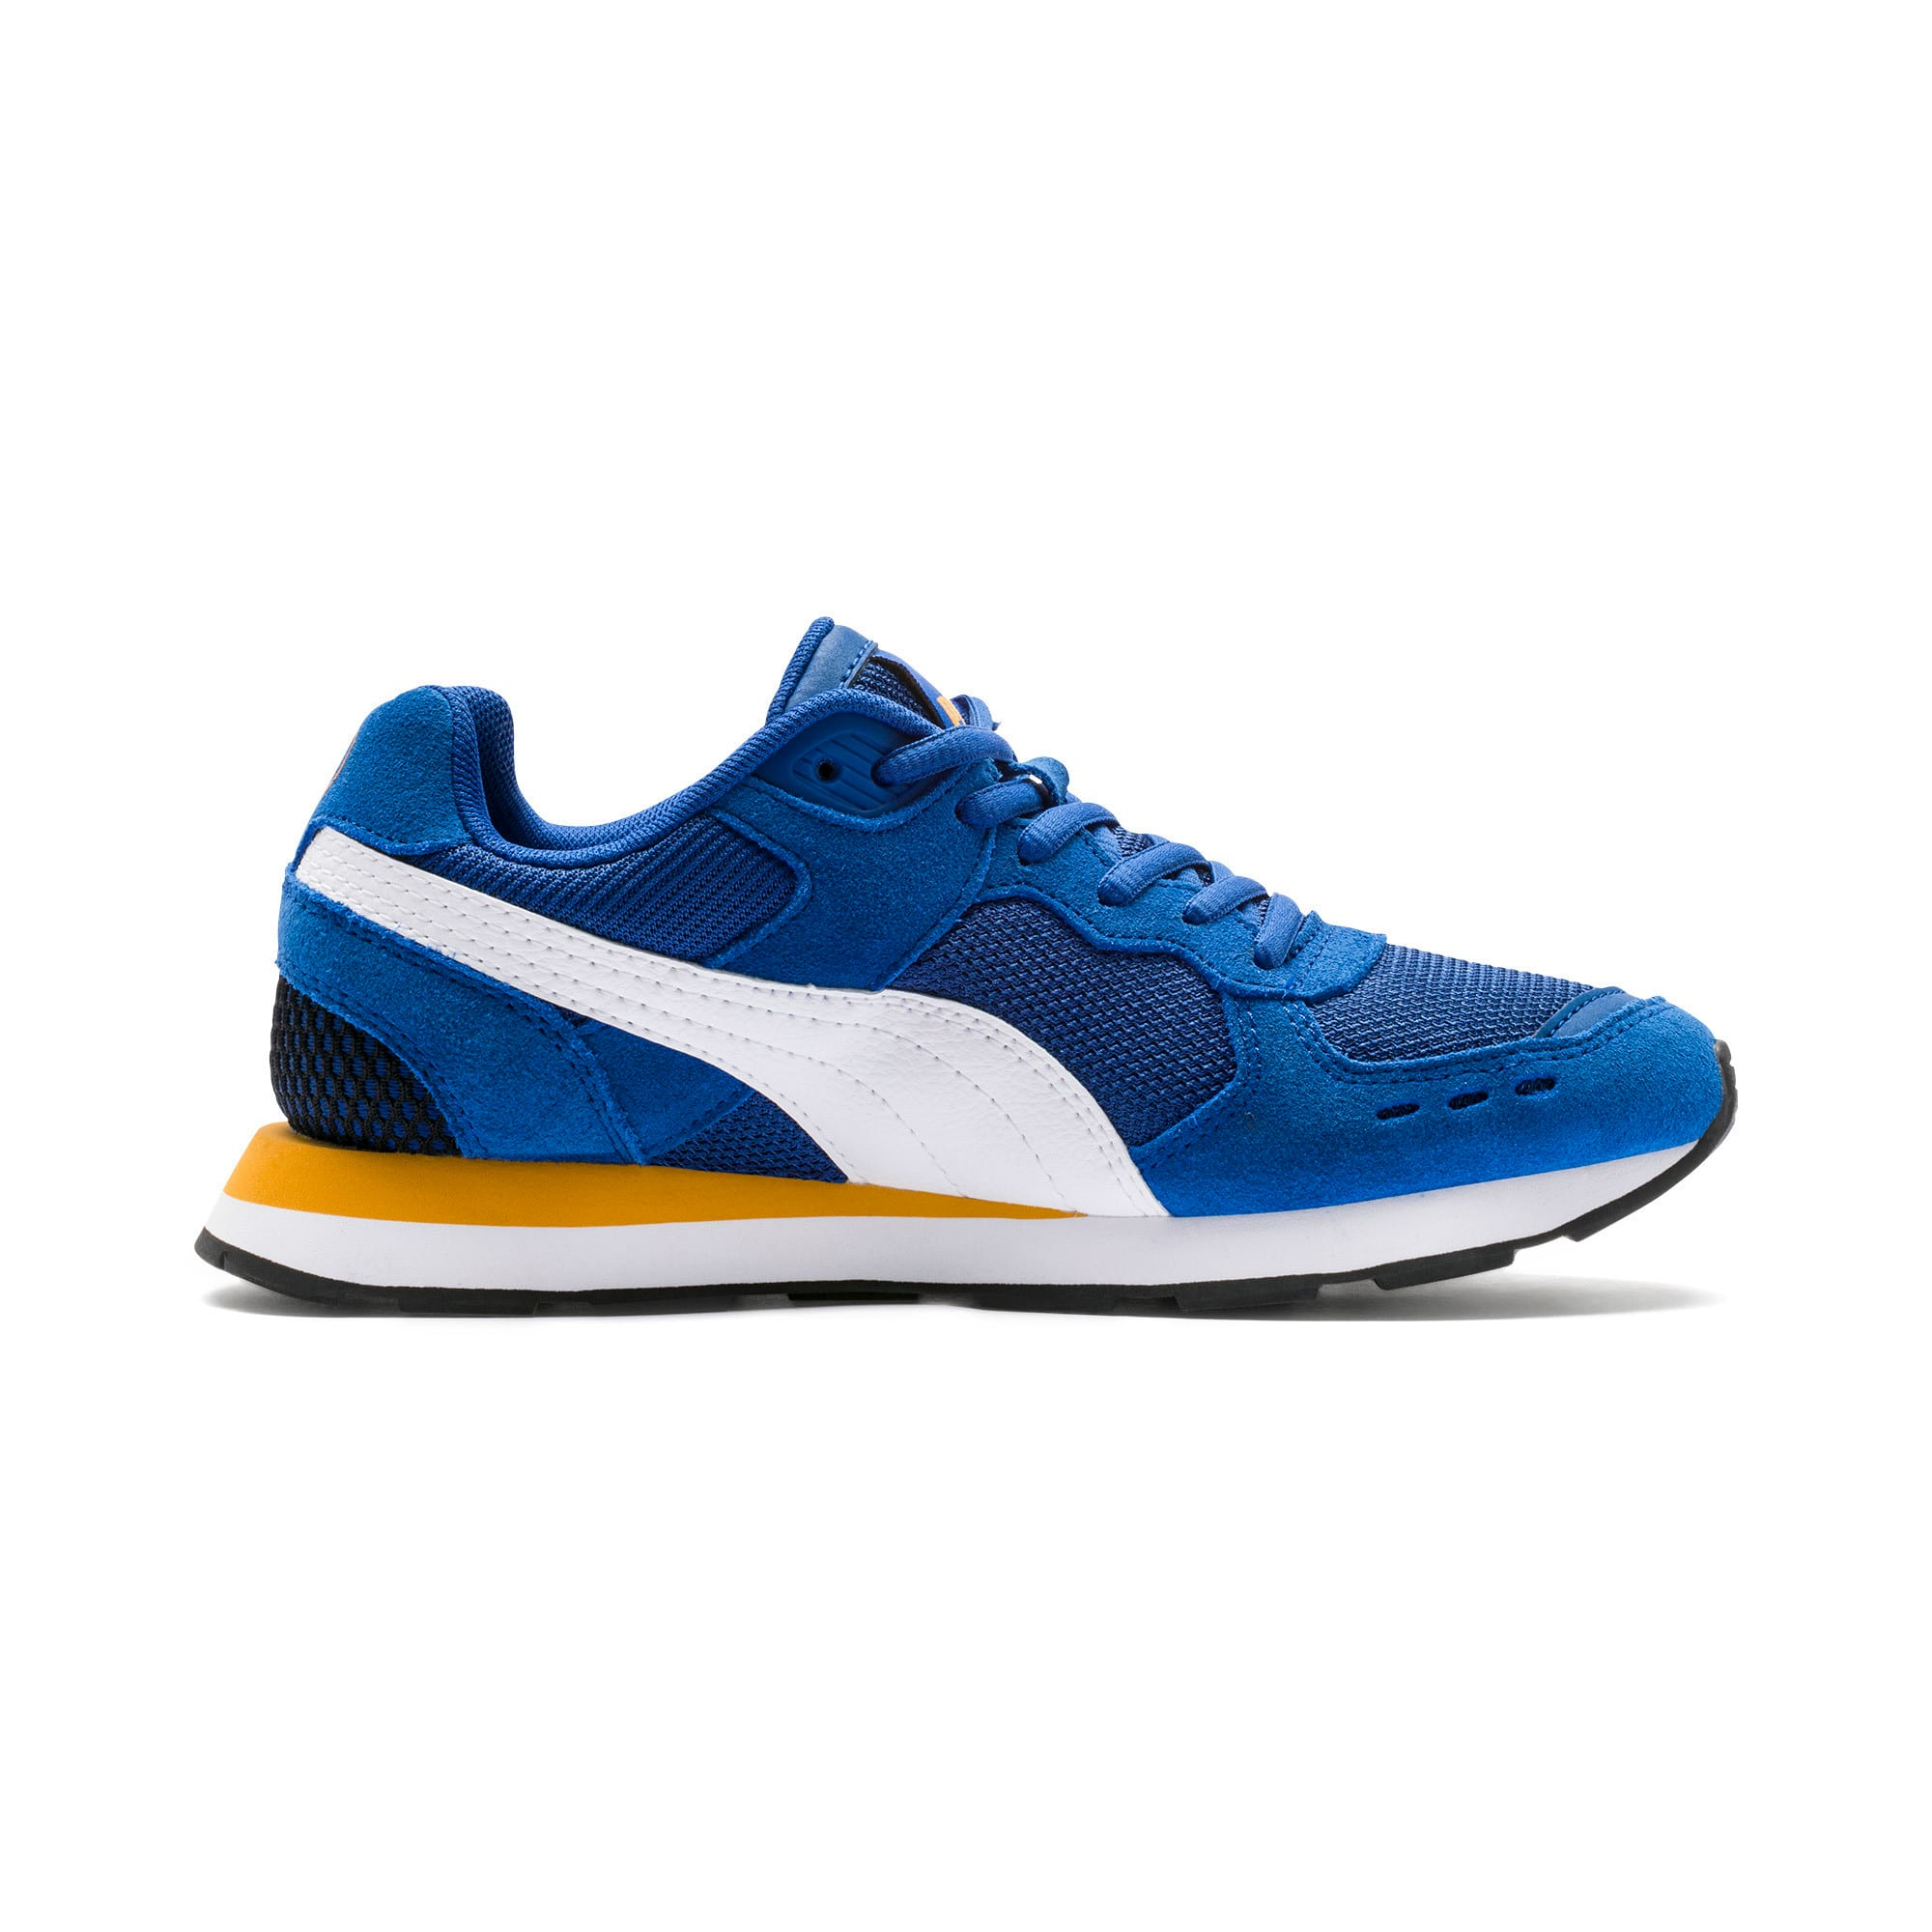 Thumbnail 5 of Vista Youth Trainers, Galaxy Blue-Puma White, medium-IND